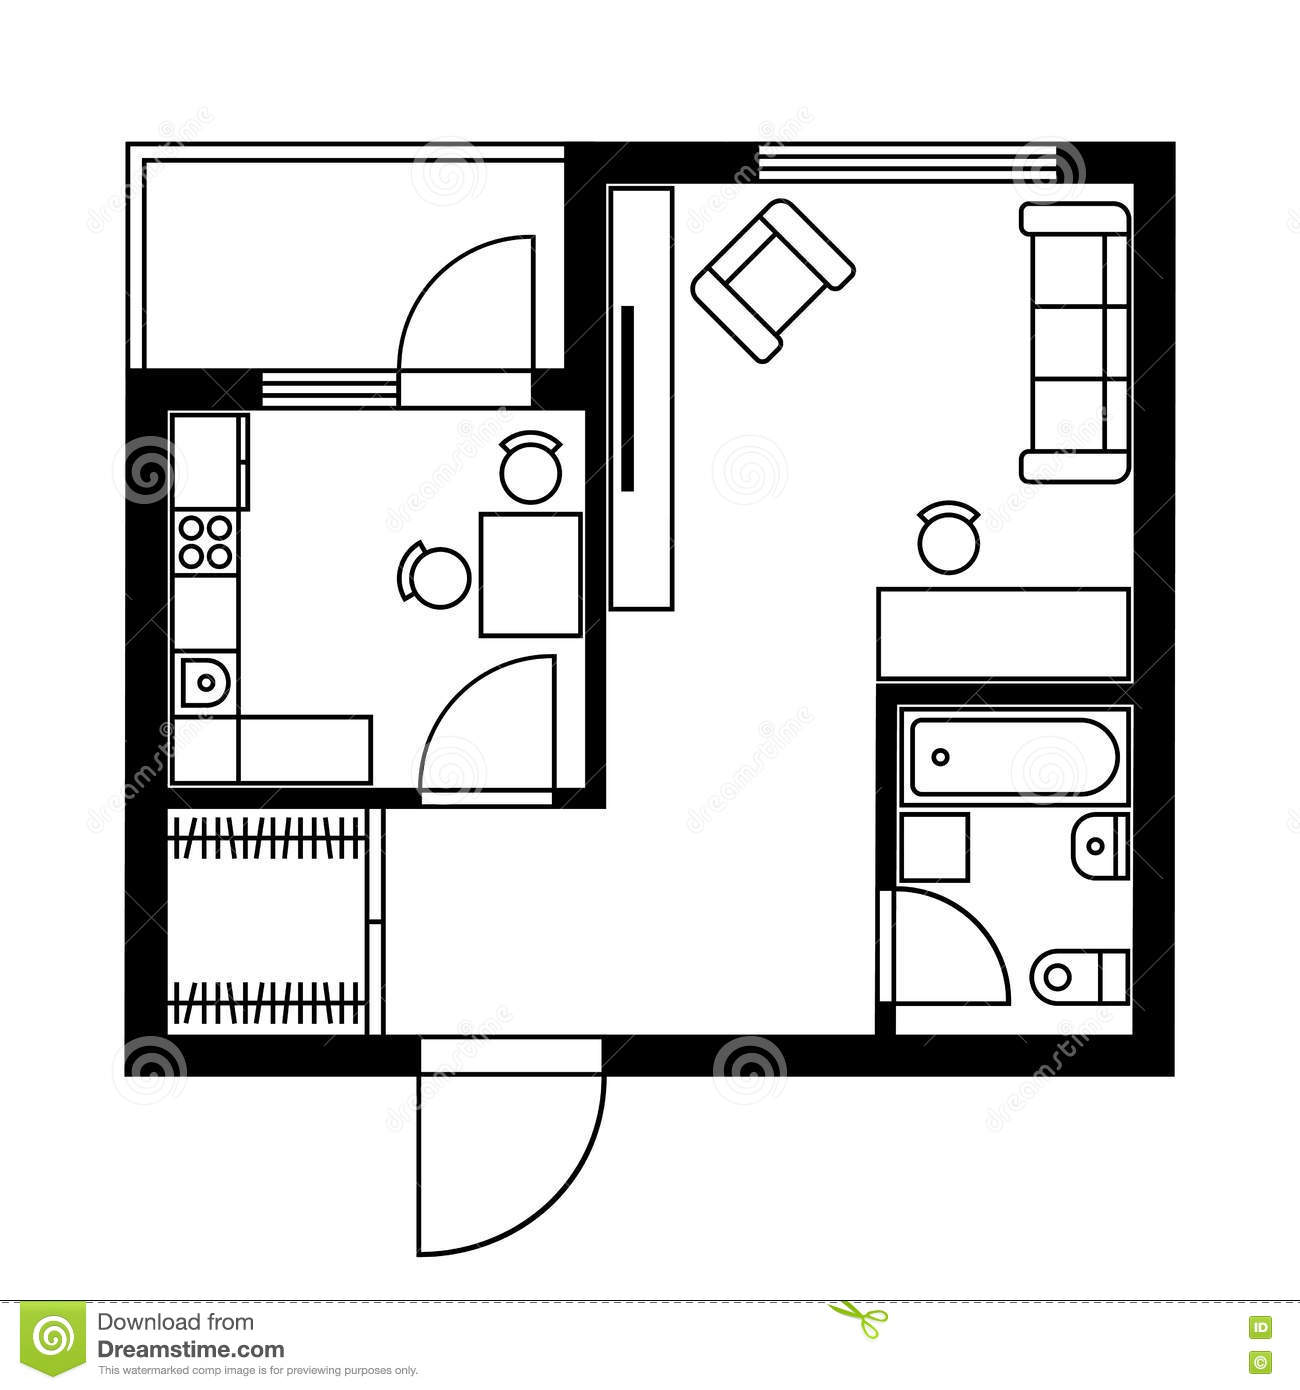 House plan with furniture - Floor Plan Of A House With Furniture Vector